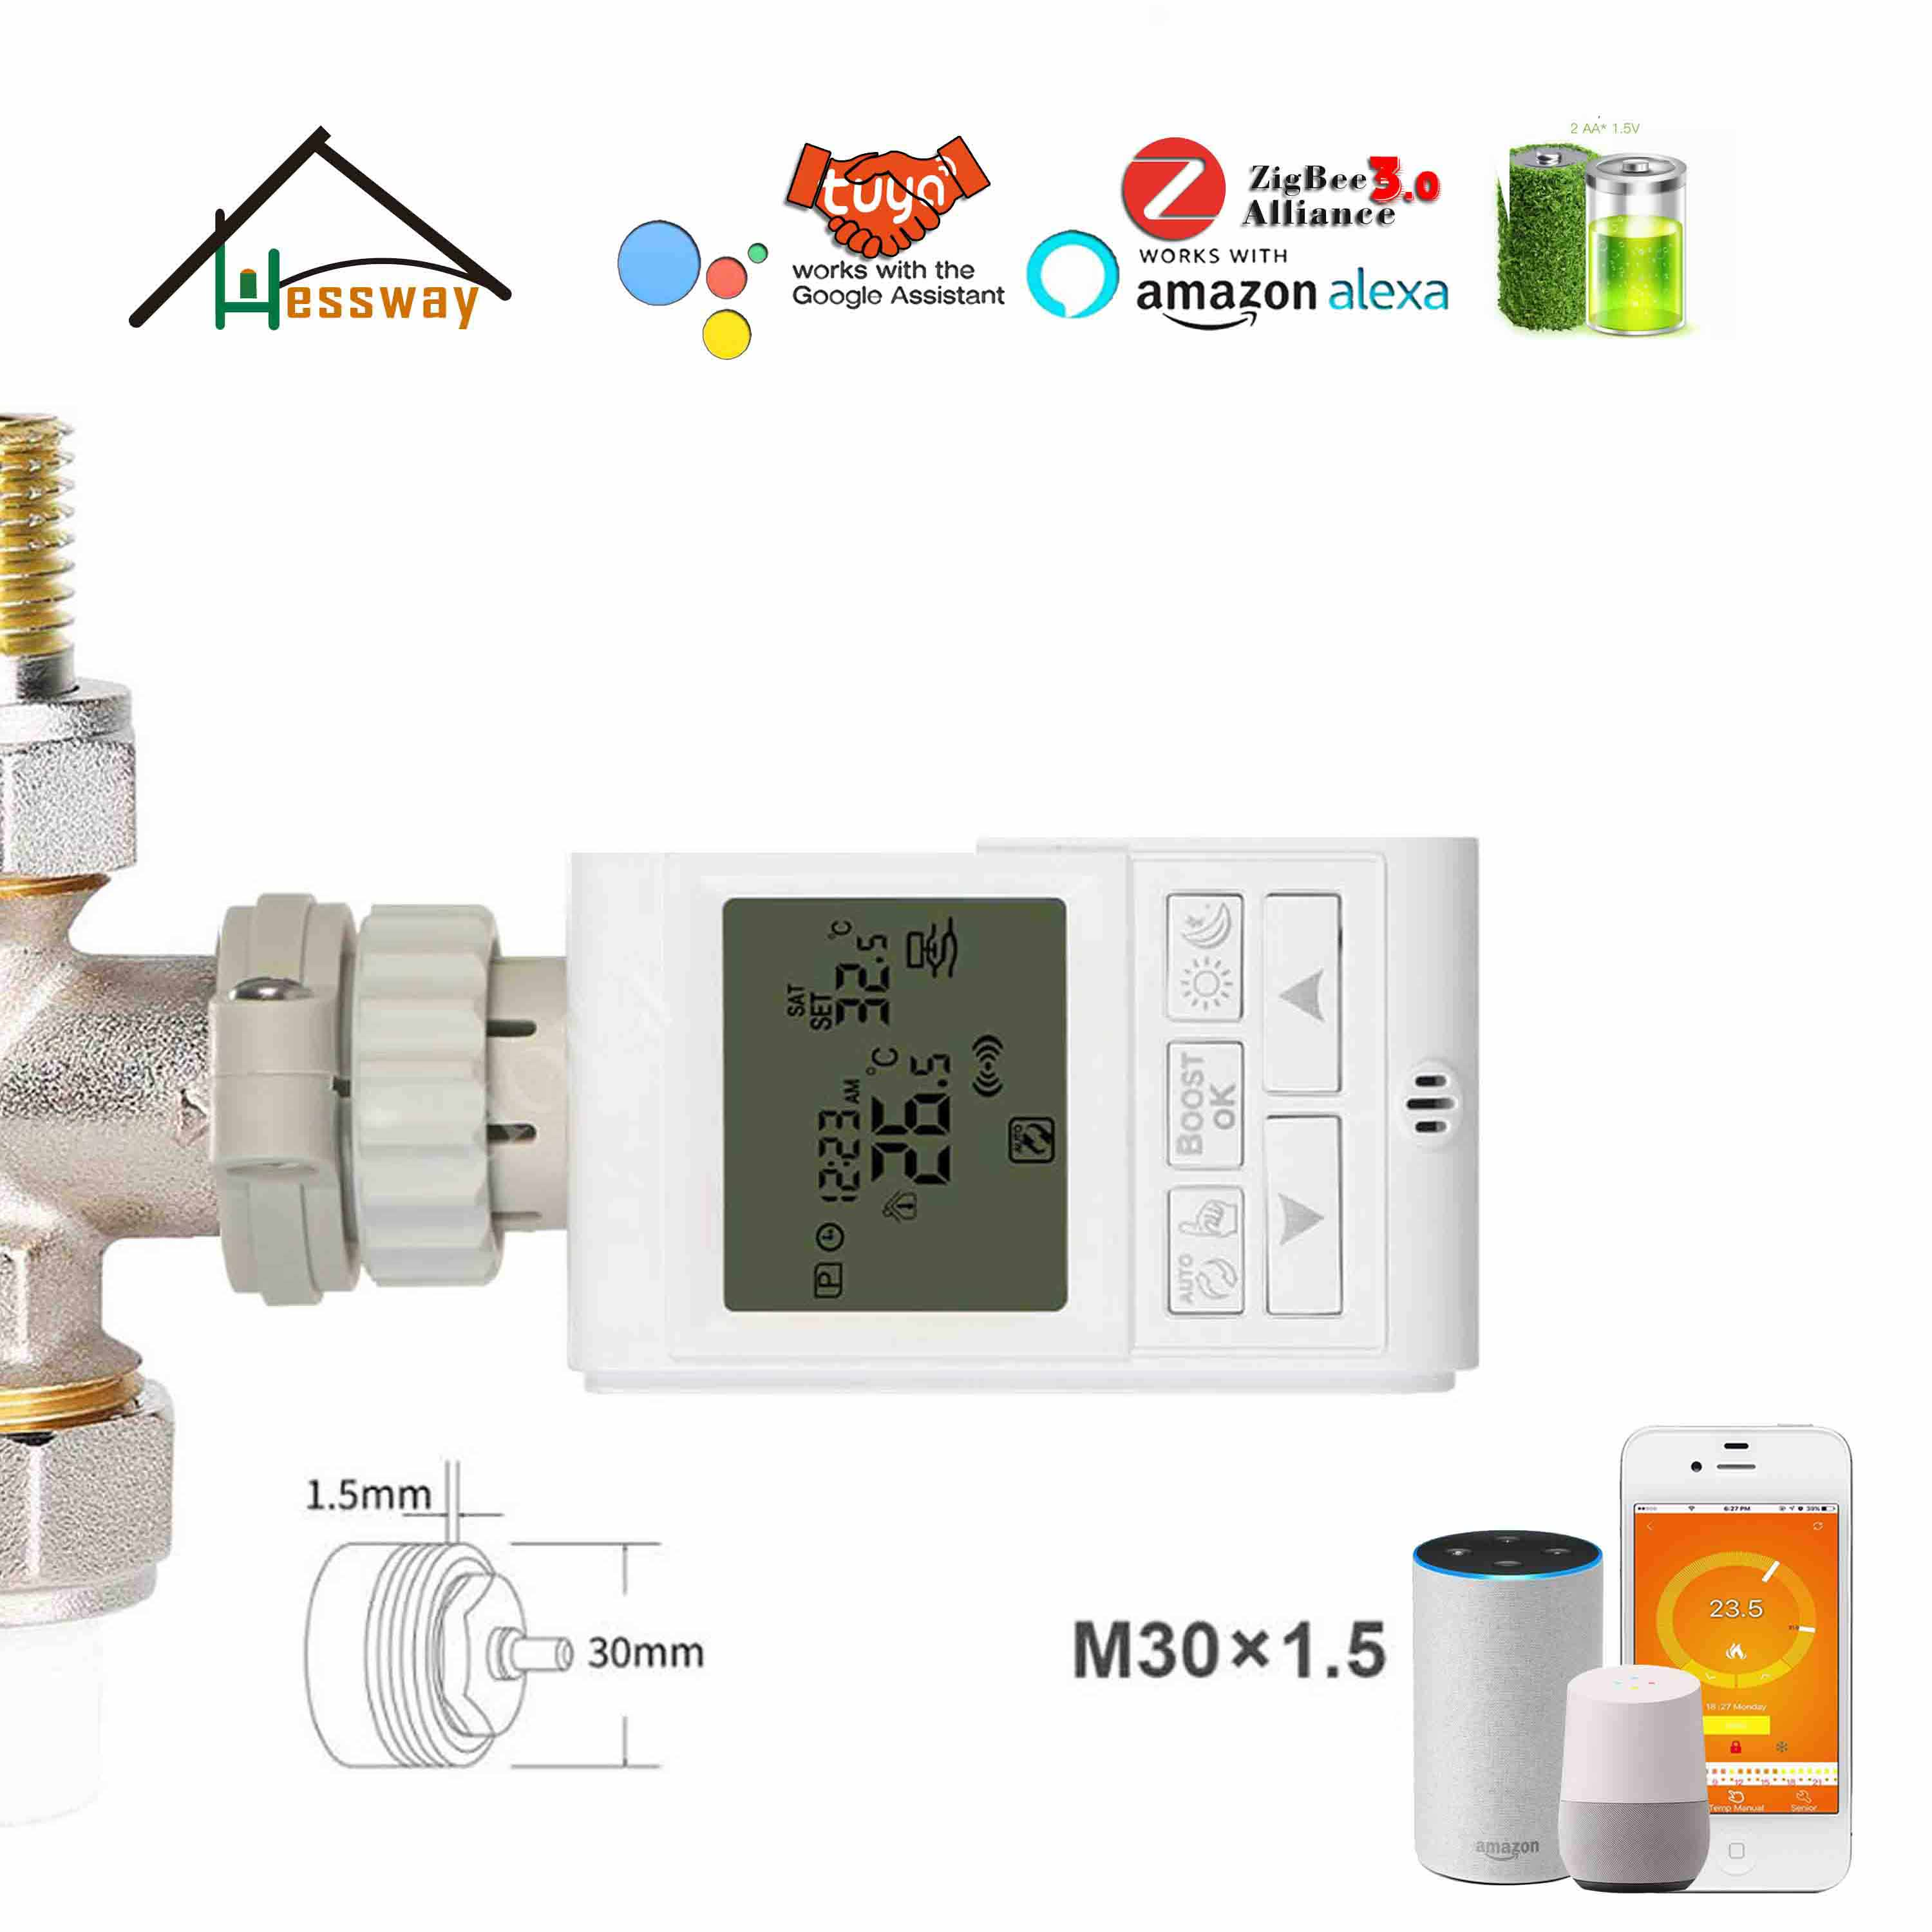 HESSWAY Thermostatic Radiator Valve By Wireless Gateway For TUYA Zigbee Thermostat IEEE 802.15.4,2.4GHz 868MHz 915MHz